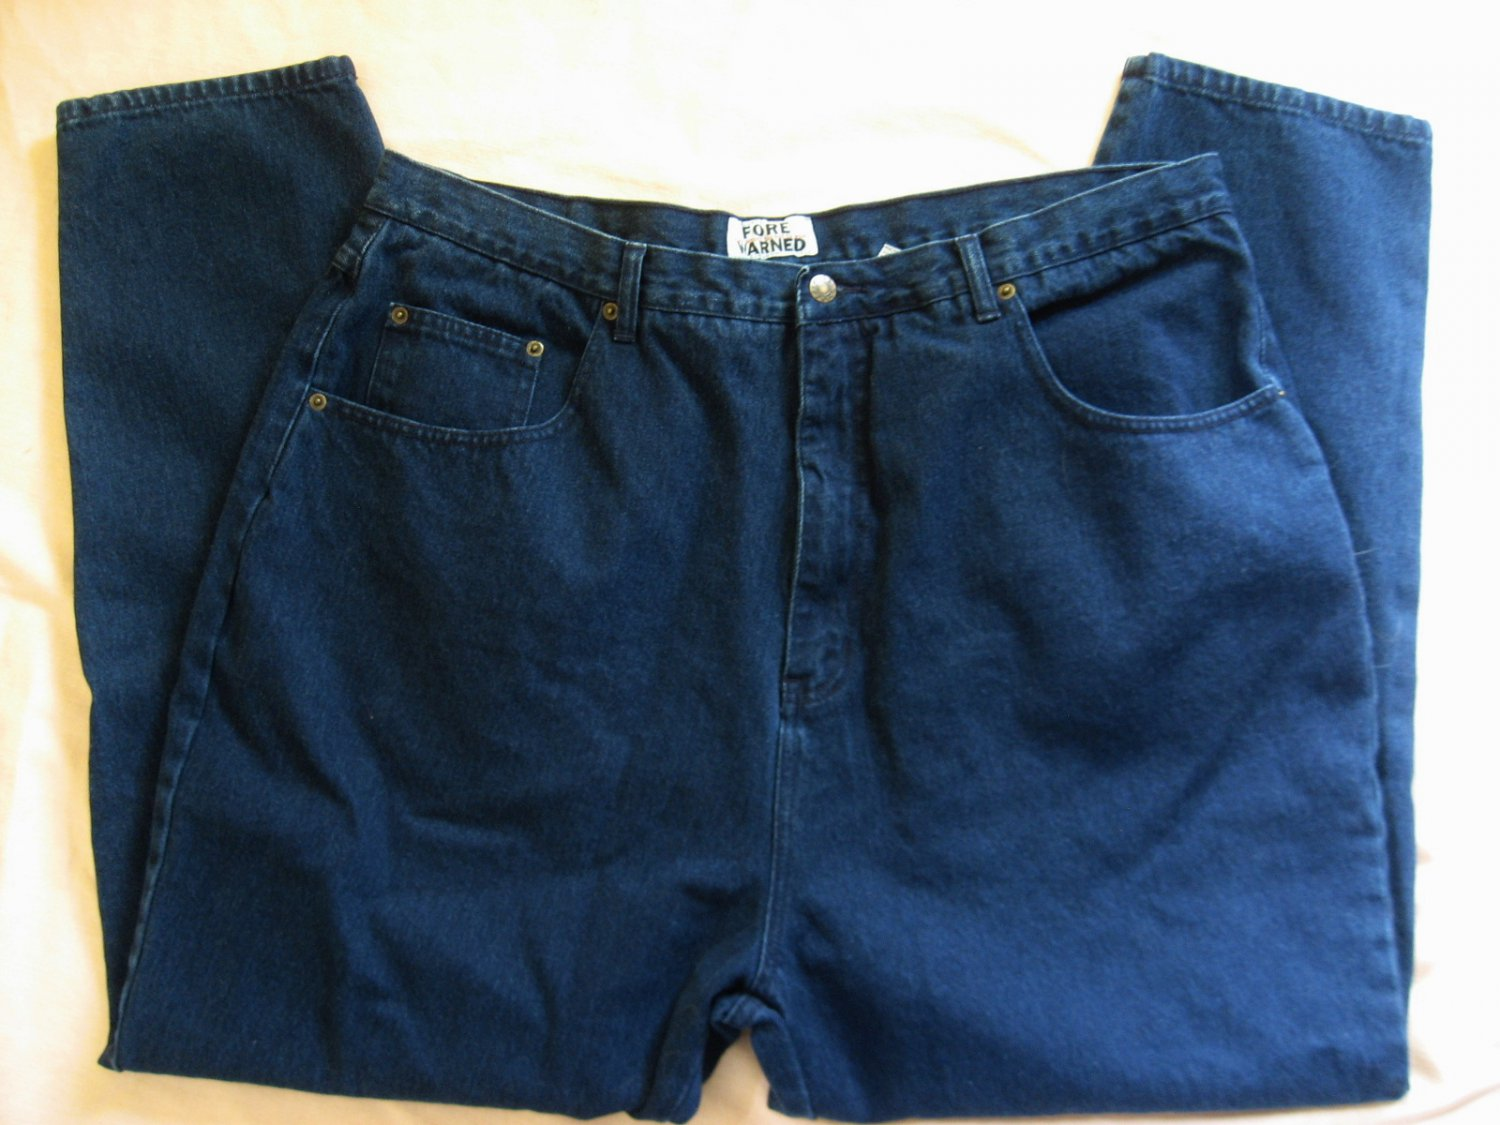 FORE WARNED Blue Jeans 24 41x29 Taper Leg EUC Denim